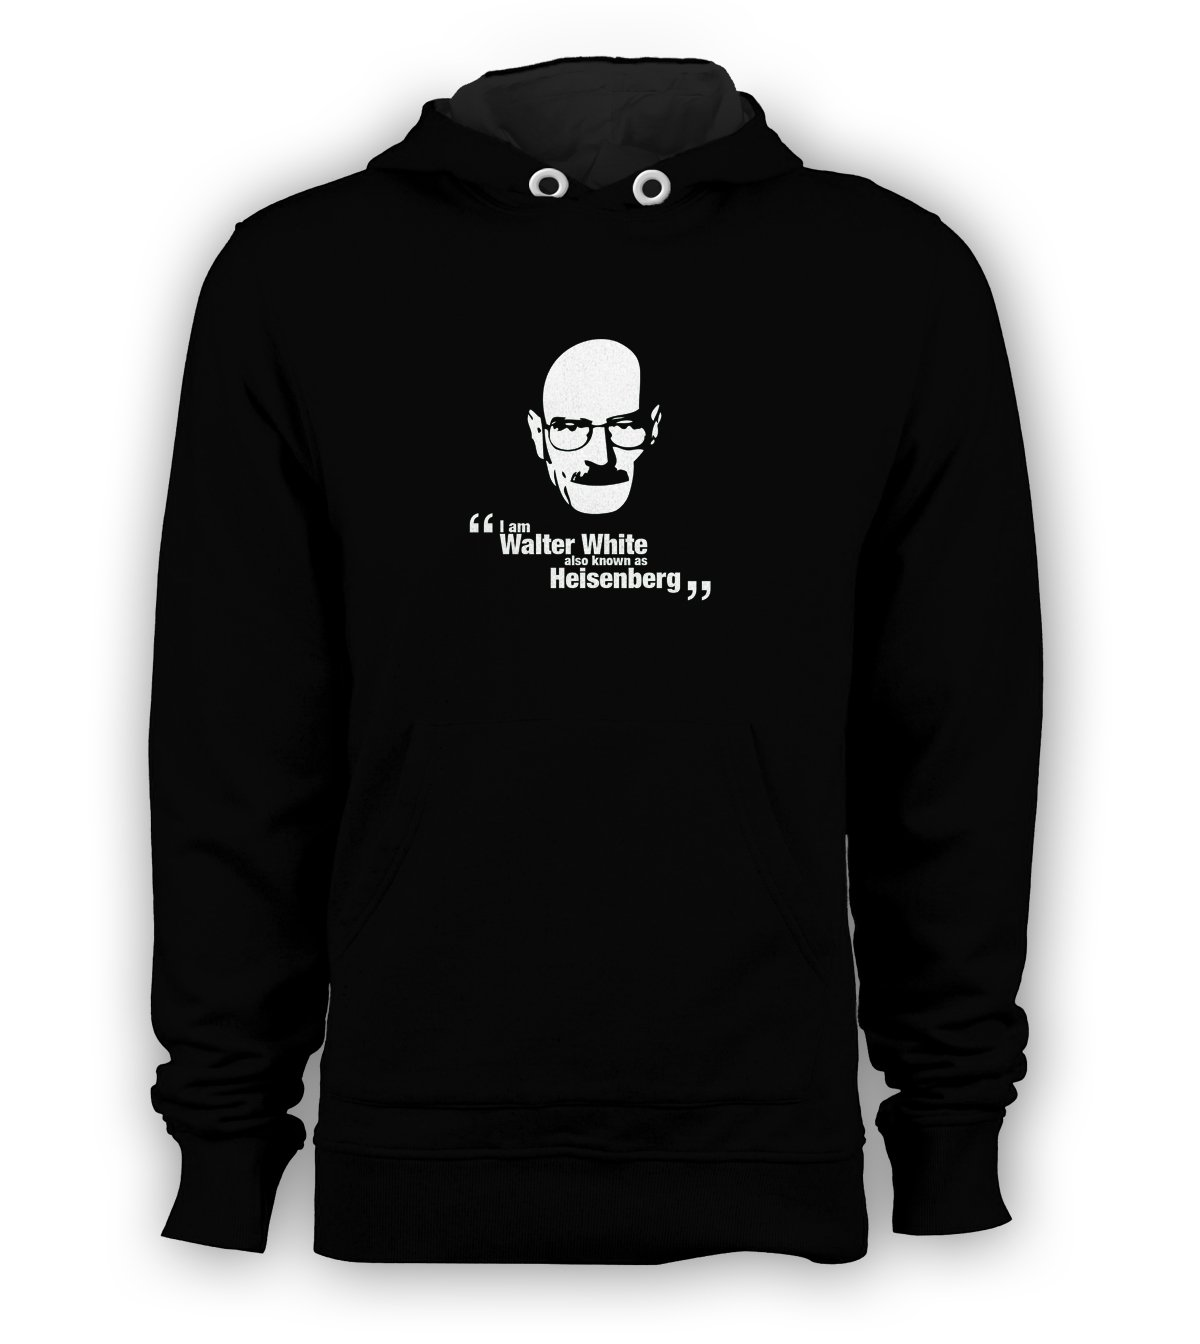 Heisenberg Walter White Pullover Hoodie Men Sweatshirts Size S to 3XL New Black